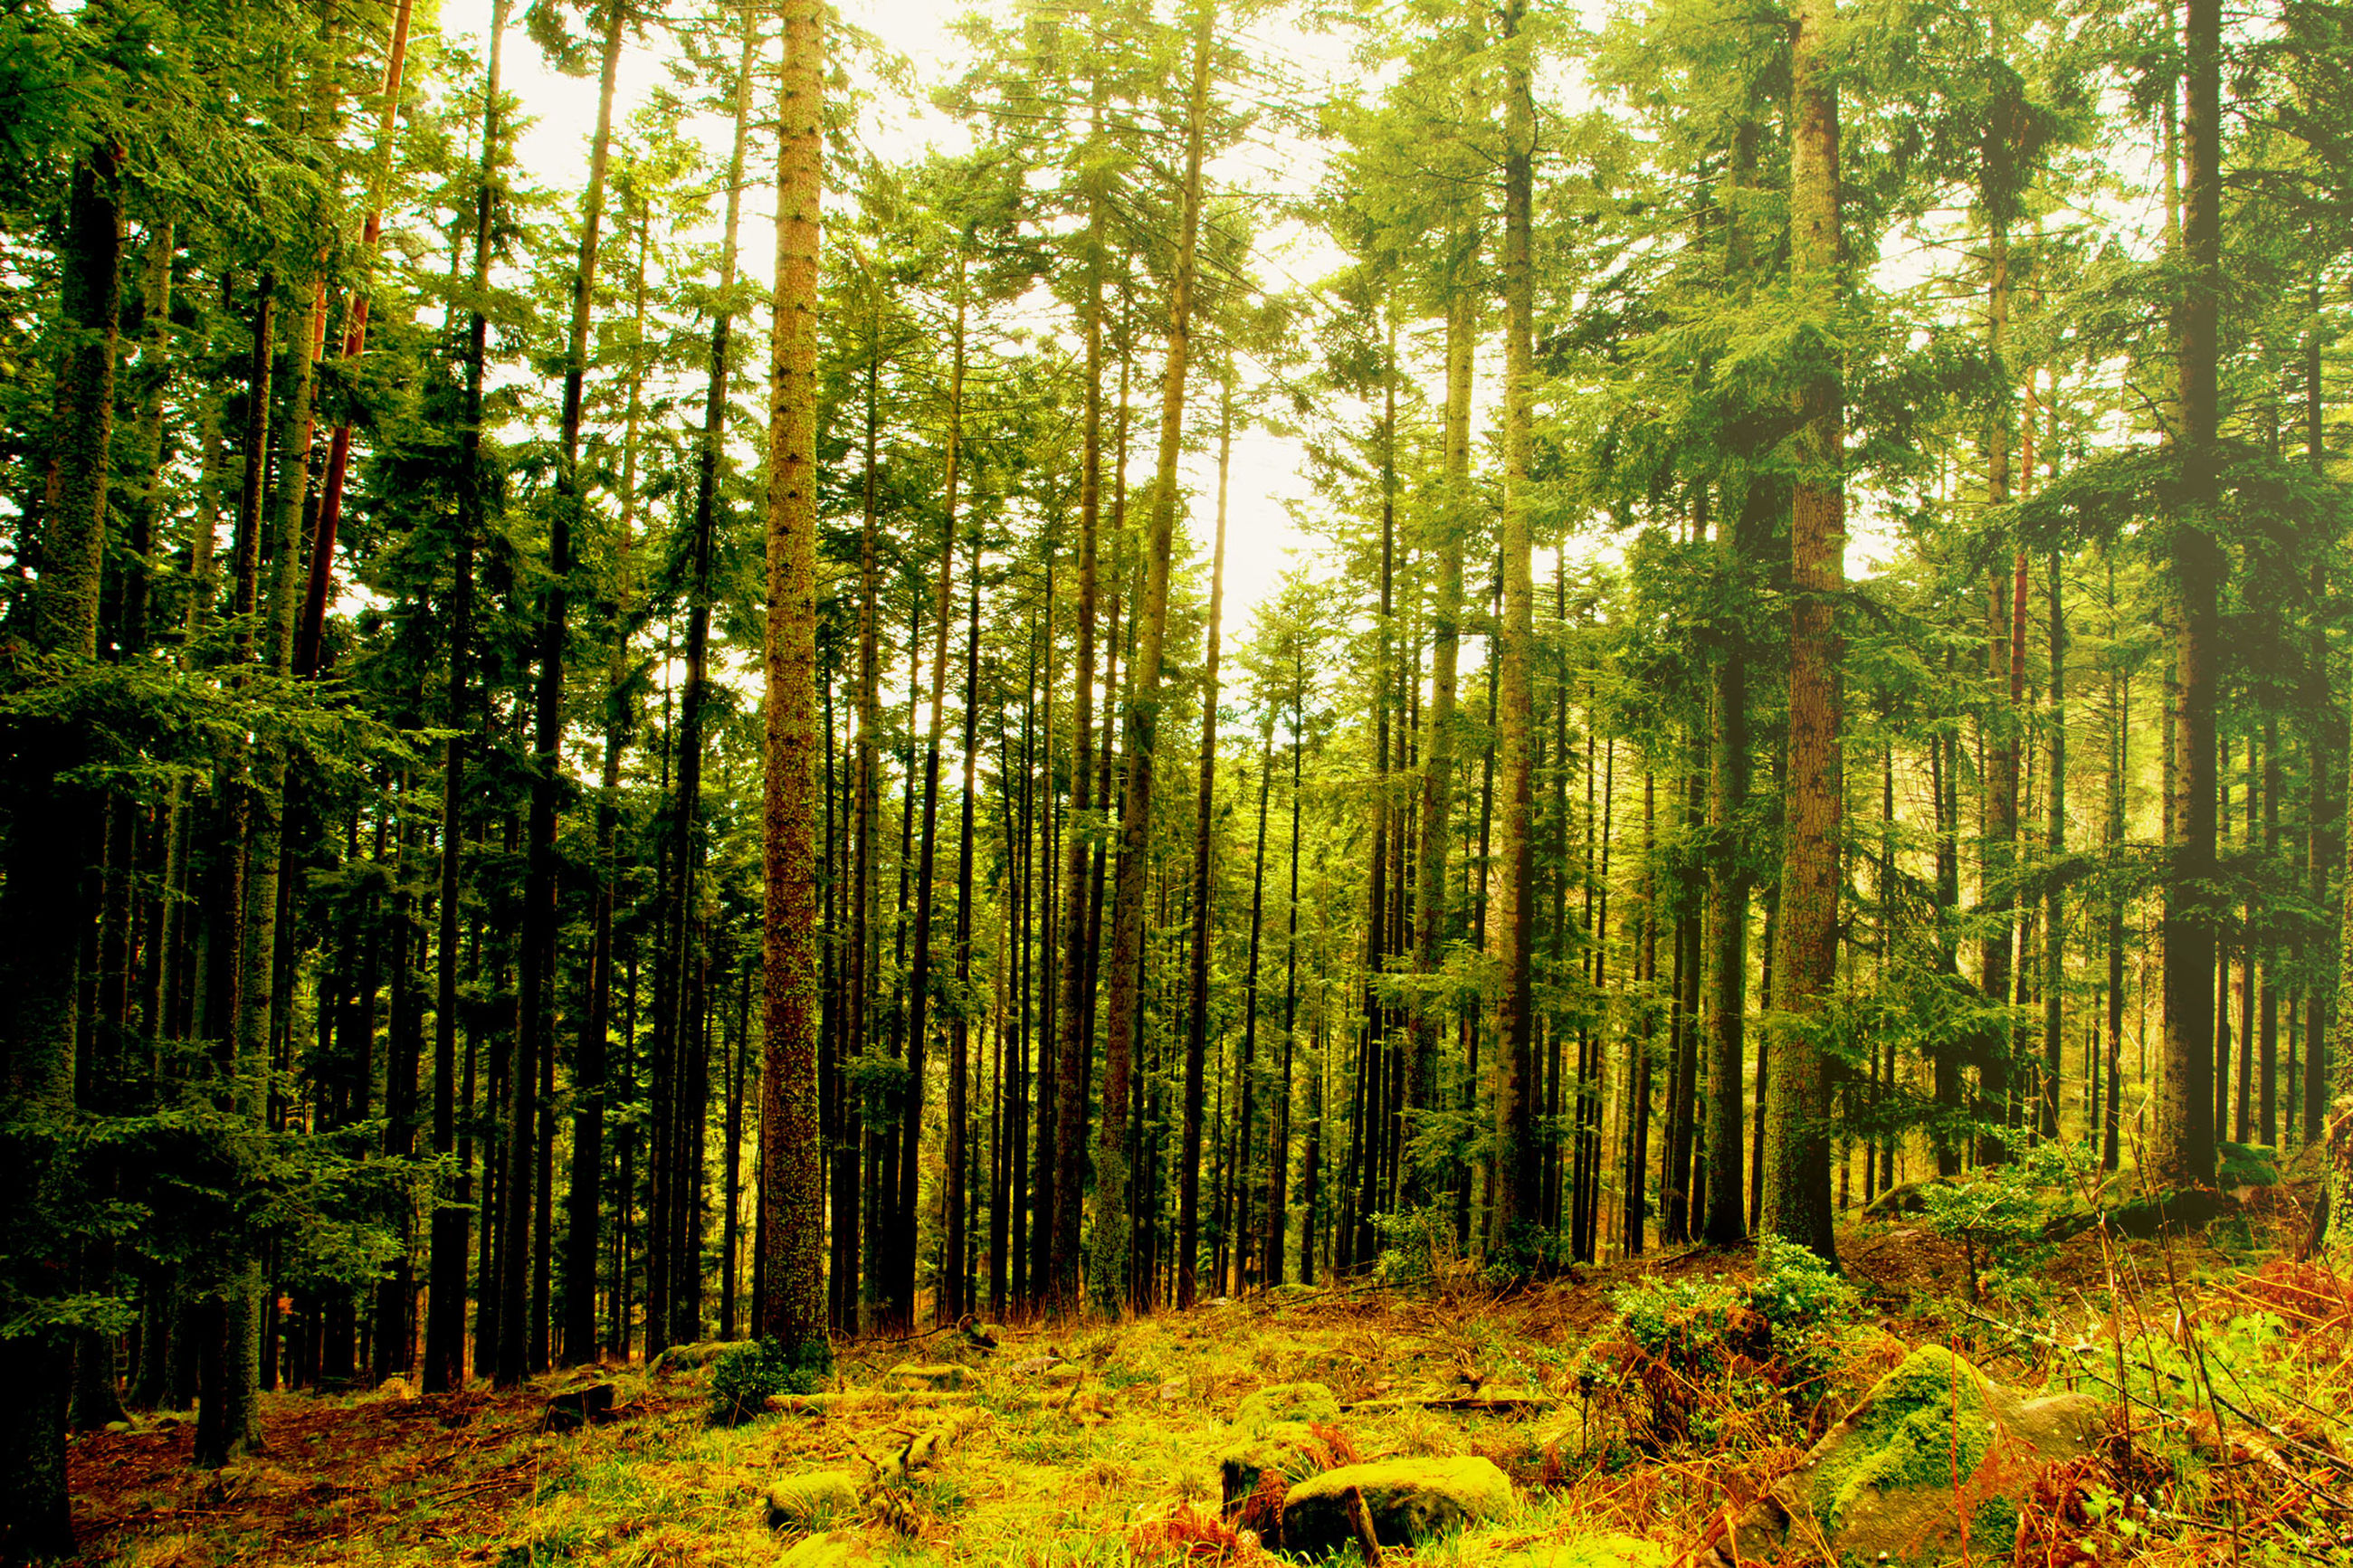 forest, tree, land, plant, woodland, nature, tranquility, day, growth, scenics - nature, beauty in nature, environment, tree trunk, tranquil scene, trunk, landscape, sunlight, non-urban scene, outdoors, no people, bamboo - plant, pine woodland